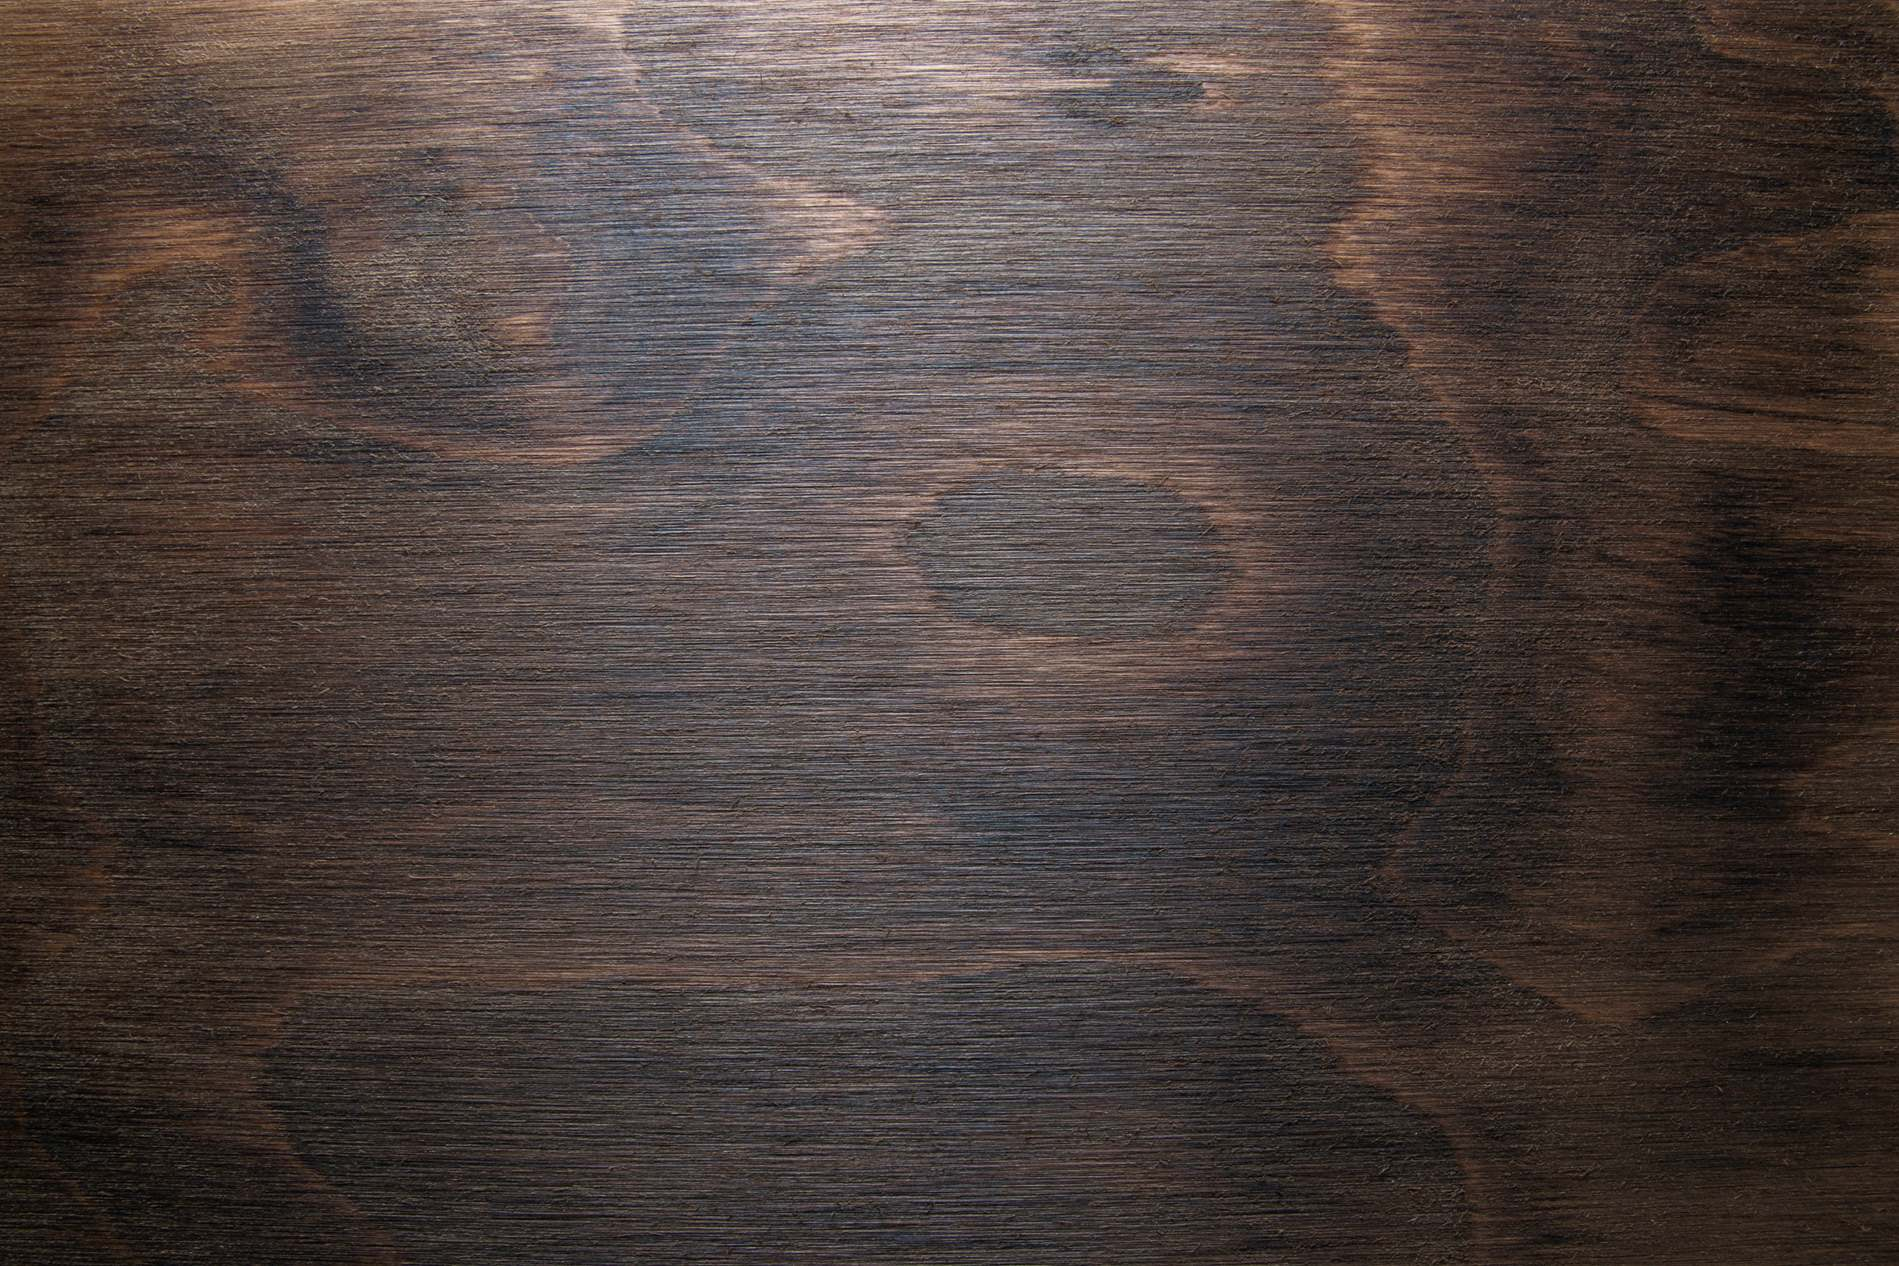 dark wood floor background. dark wood texture background floor